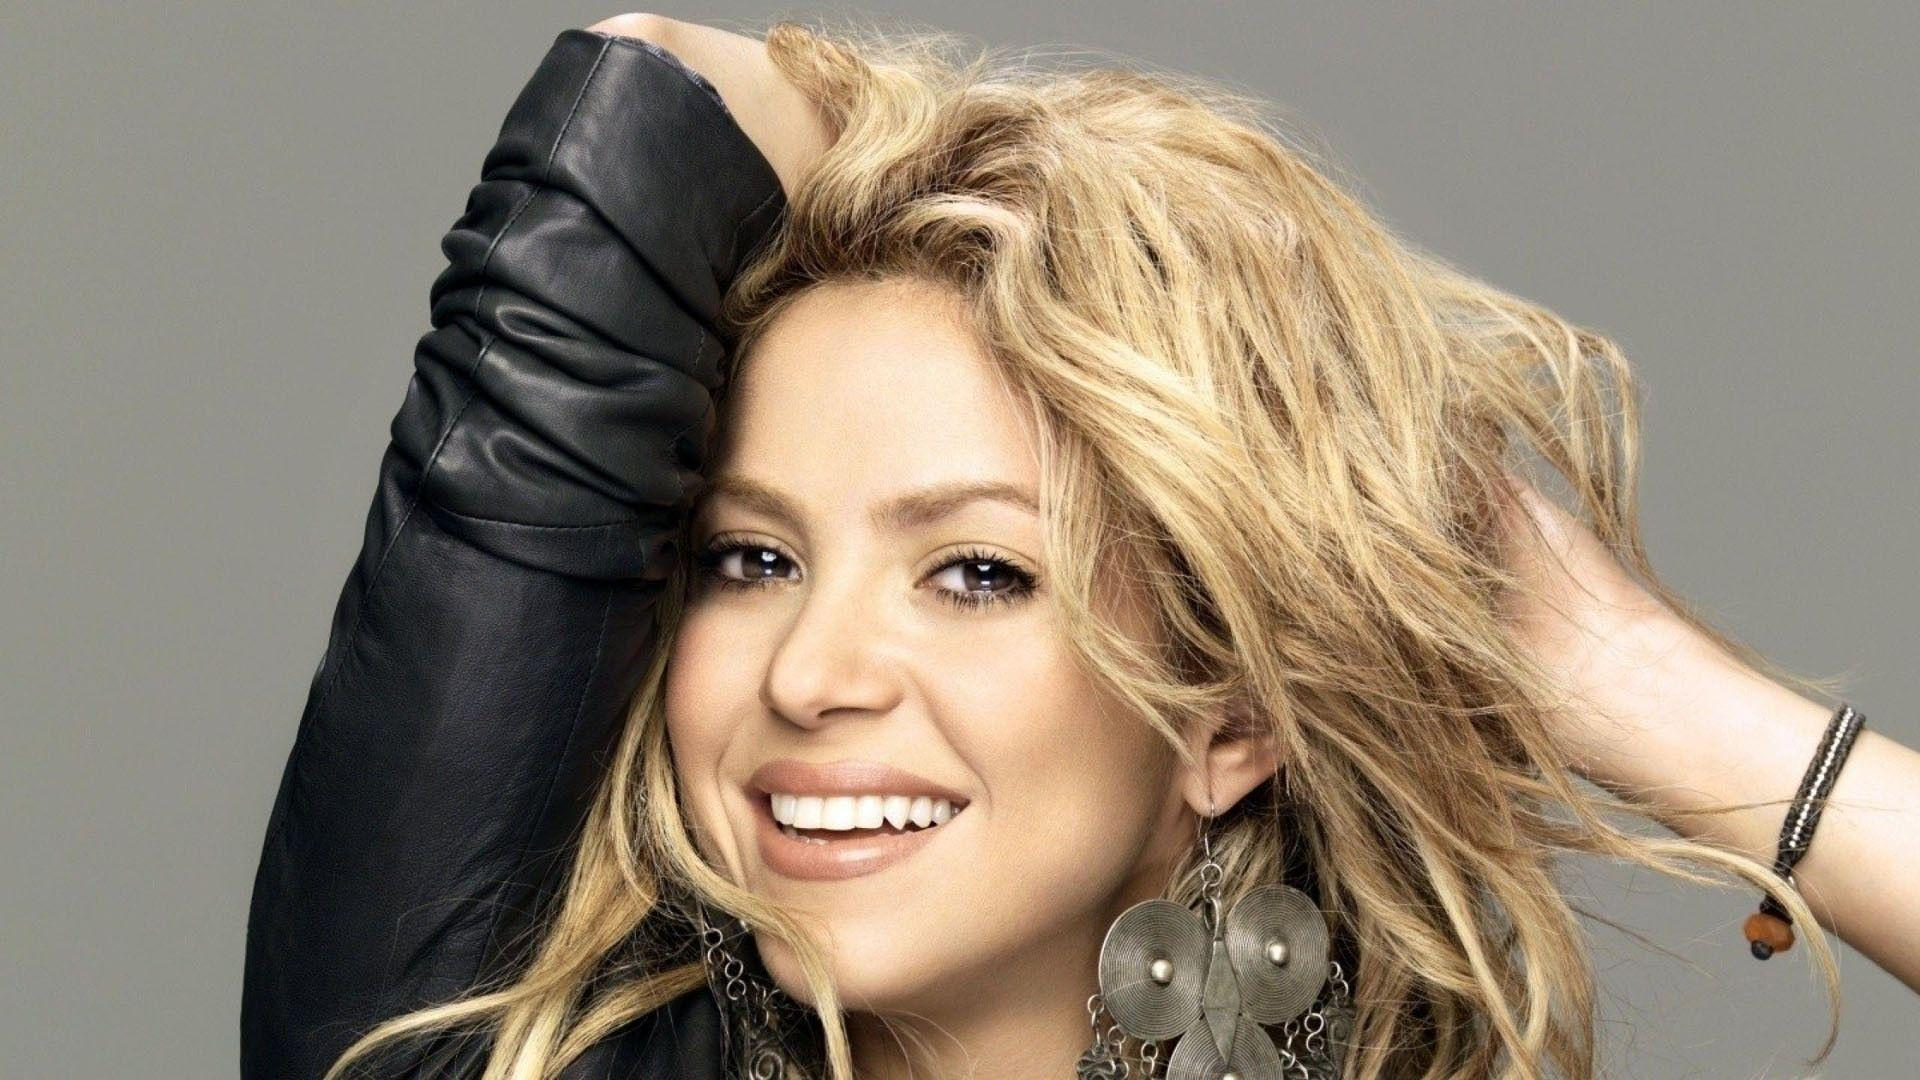 Printable Shakira Picture designs – Shakira's Freestyle Computer Picture designs Are a Hit With Pop Star Fans